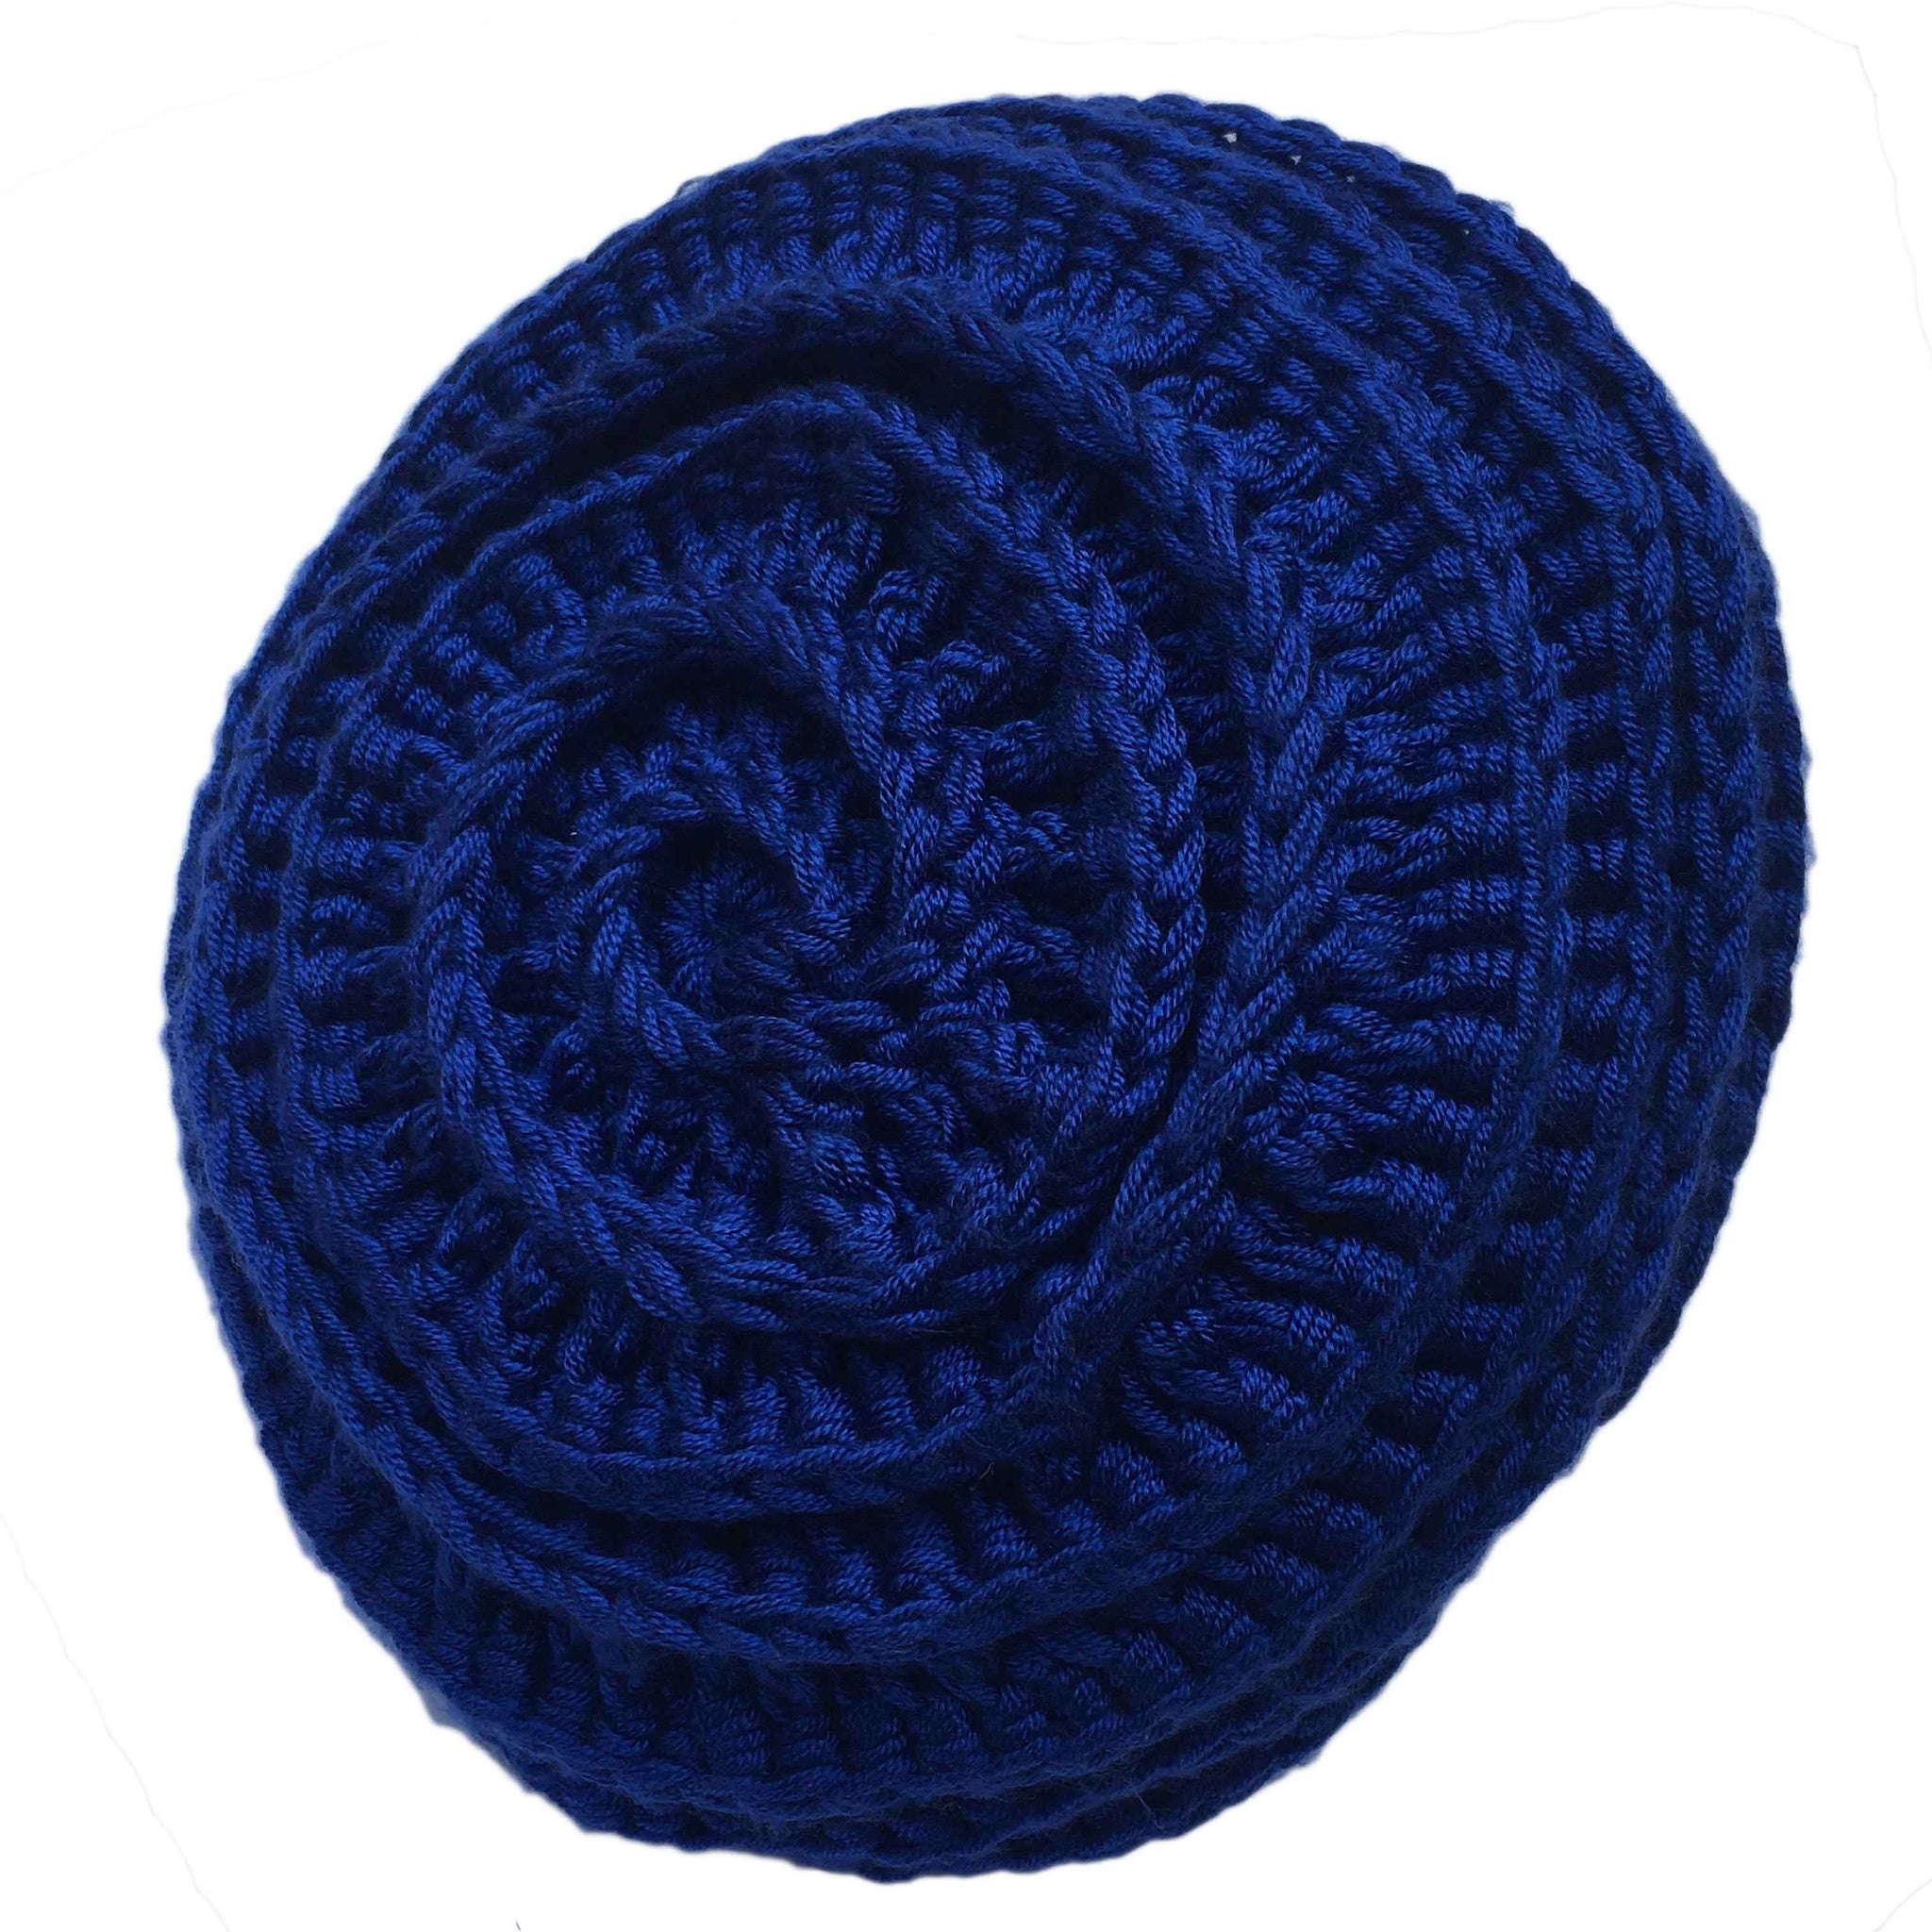 The Mysterious Spiral Handmade Crochet Beanie Hat - Crochita - 1